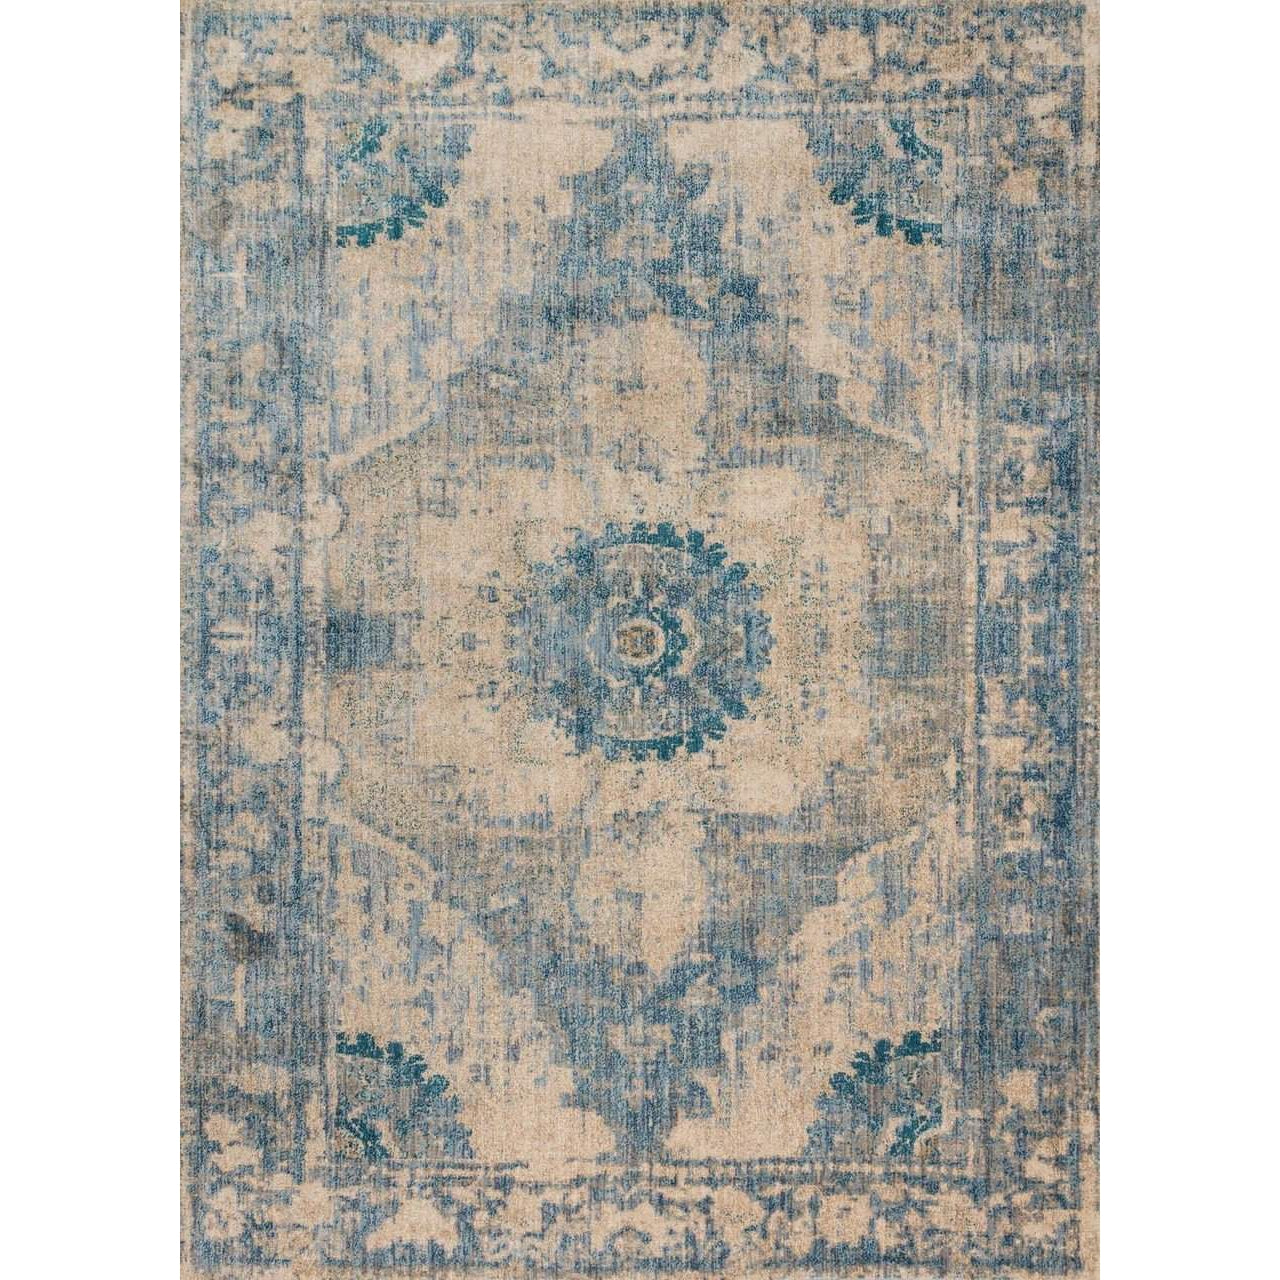 Joanna Gaines Rugs Of Magnolia Home Rug Collection Kivi